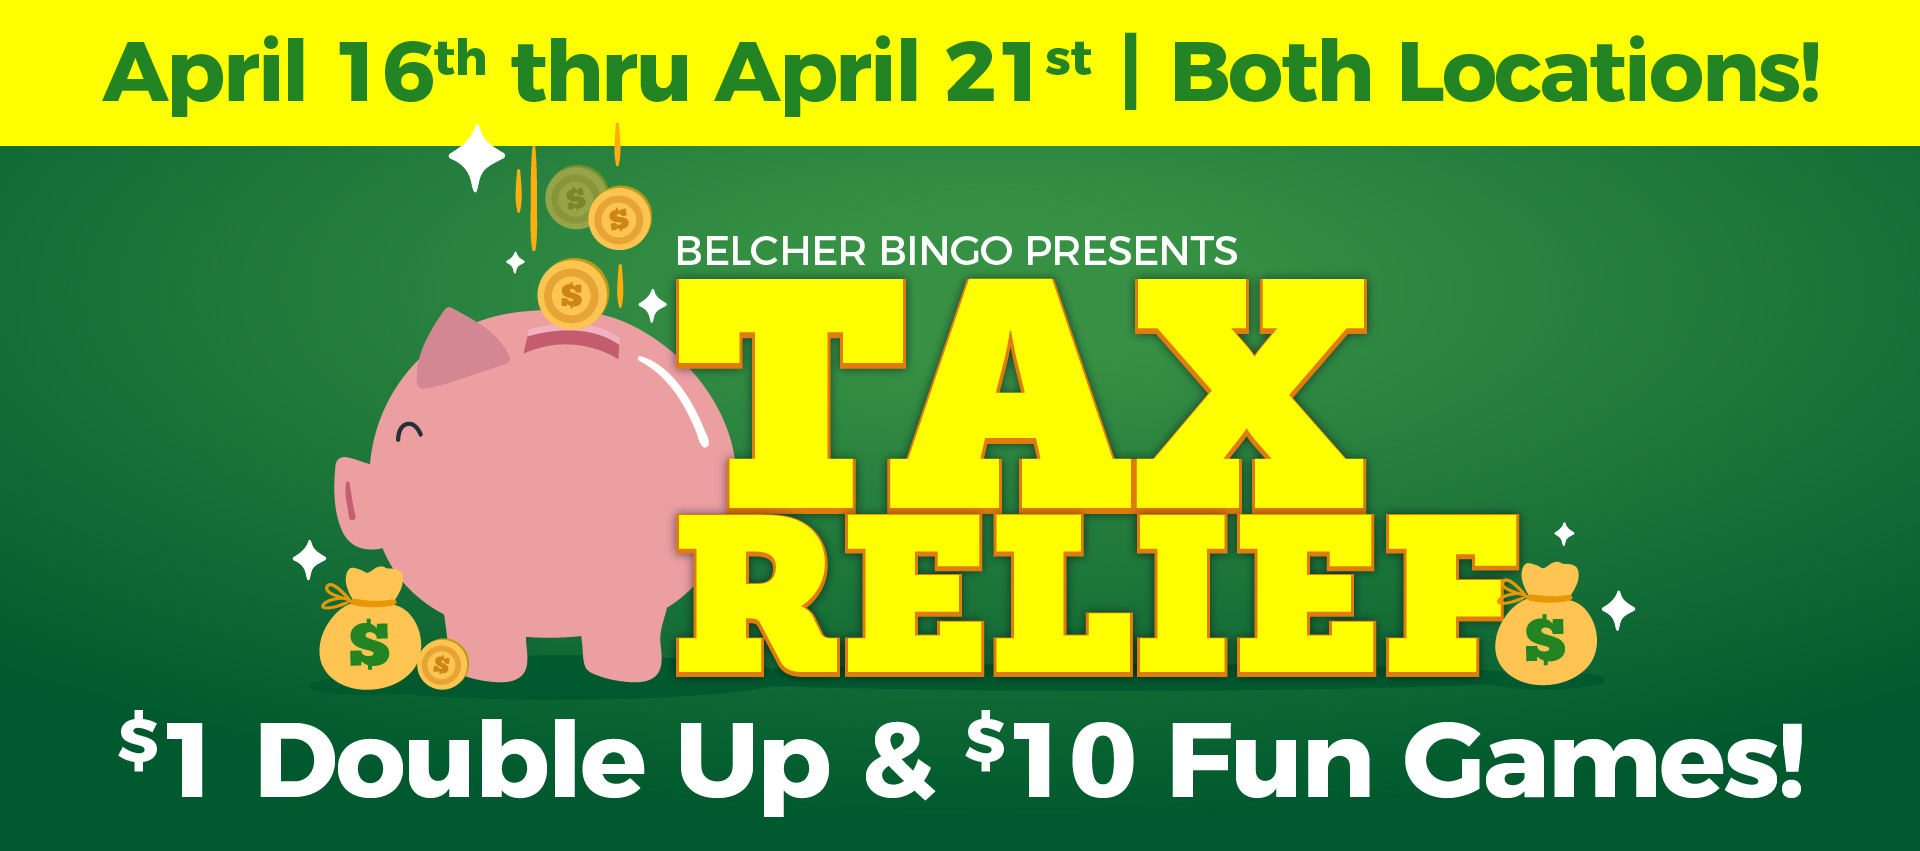 Belcher Bingo - Tax Relief